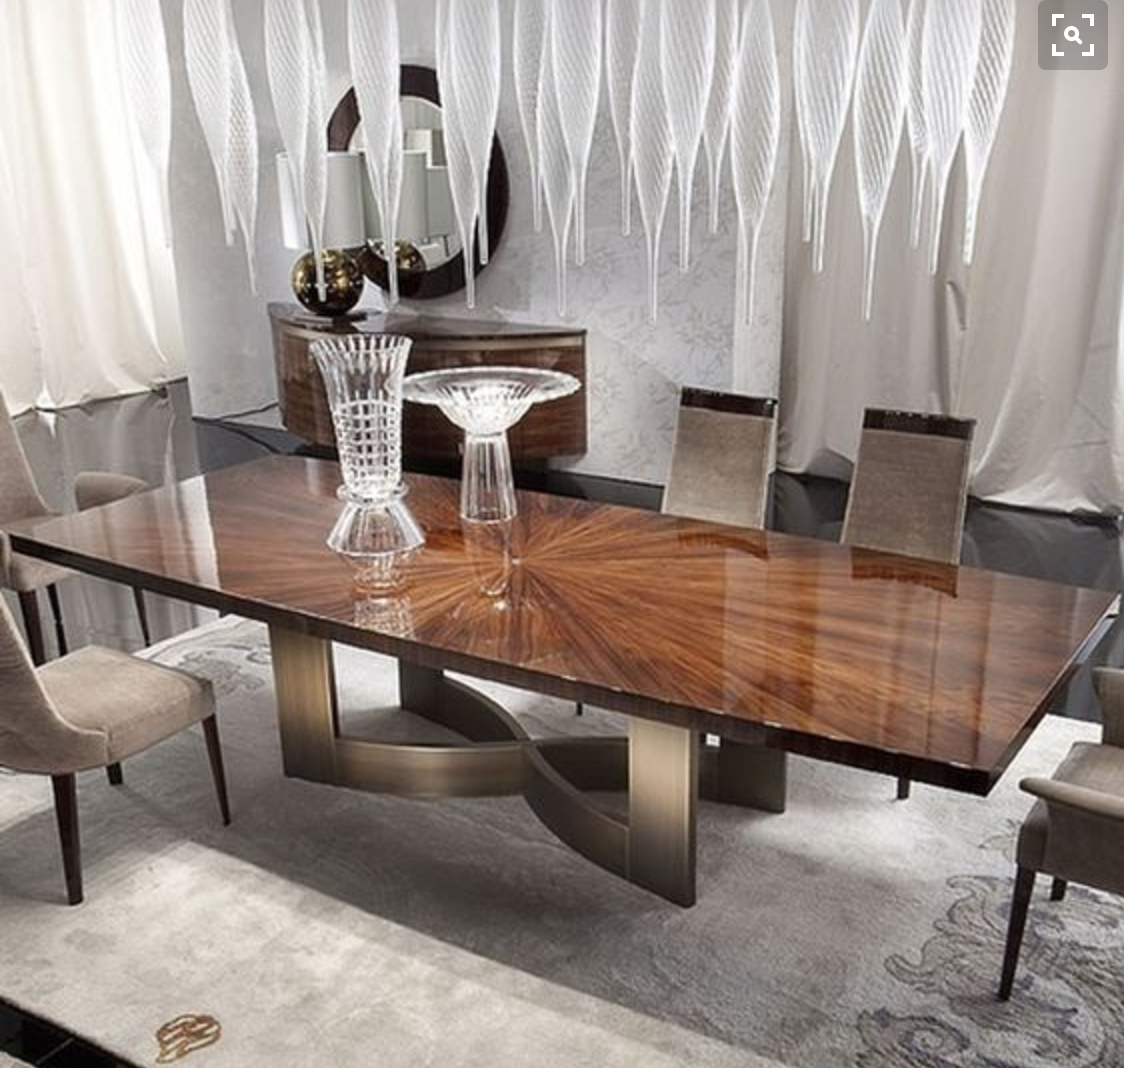 Bring Life To Your Home With This Stunning Dining Tables Design